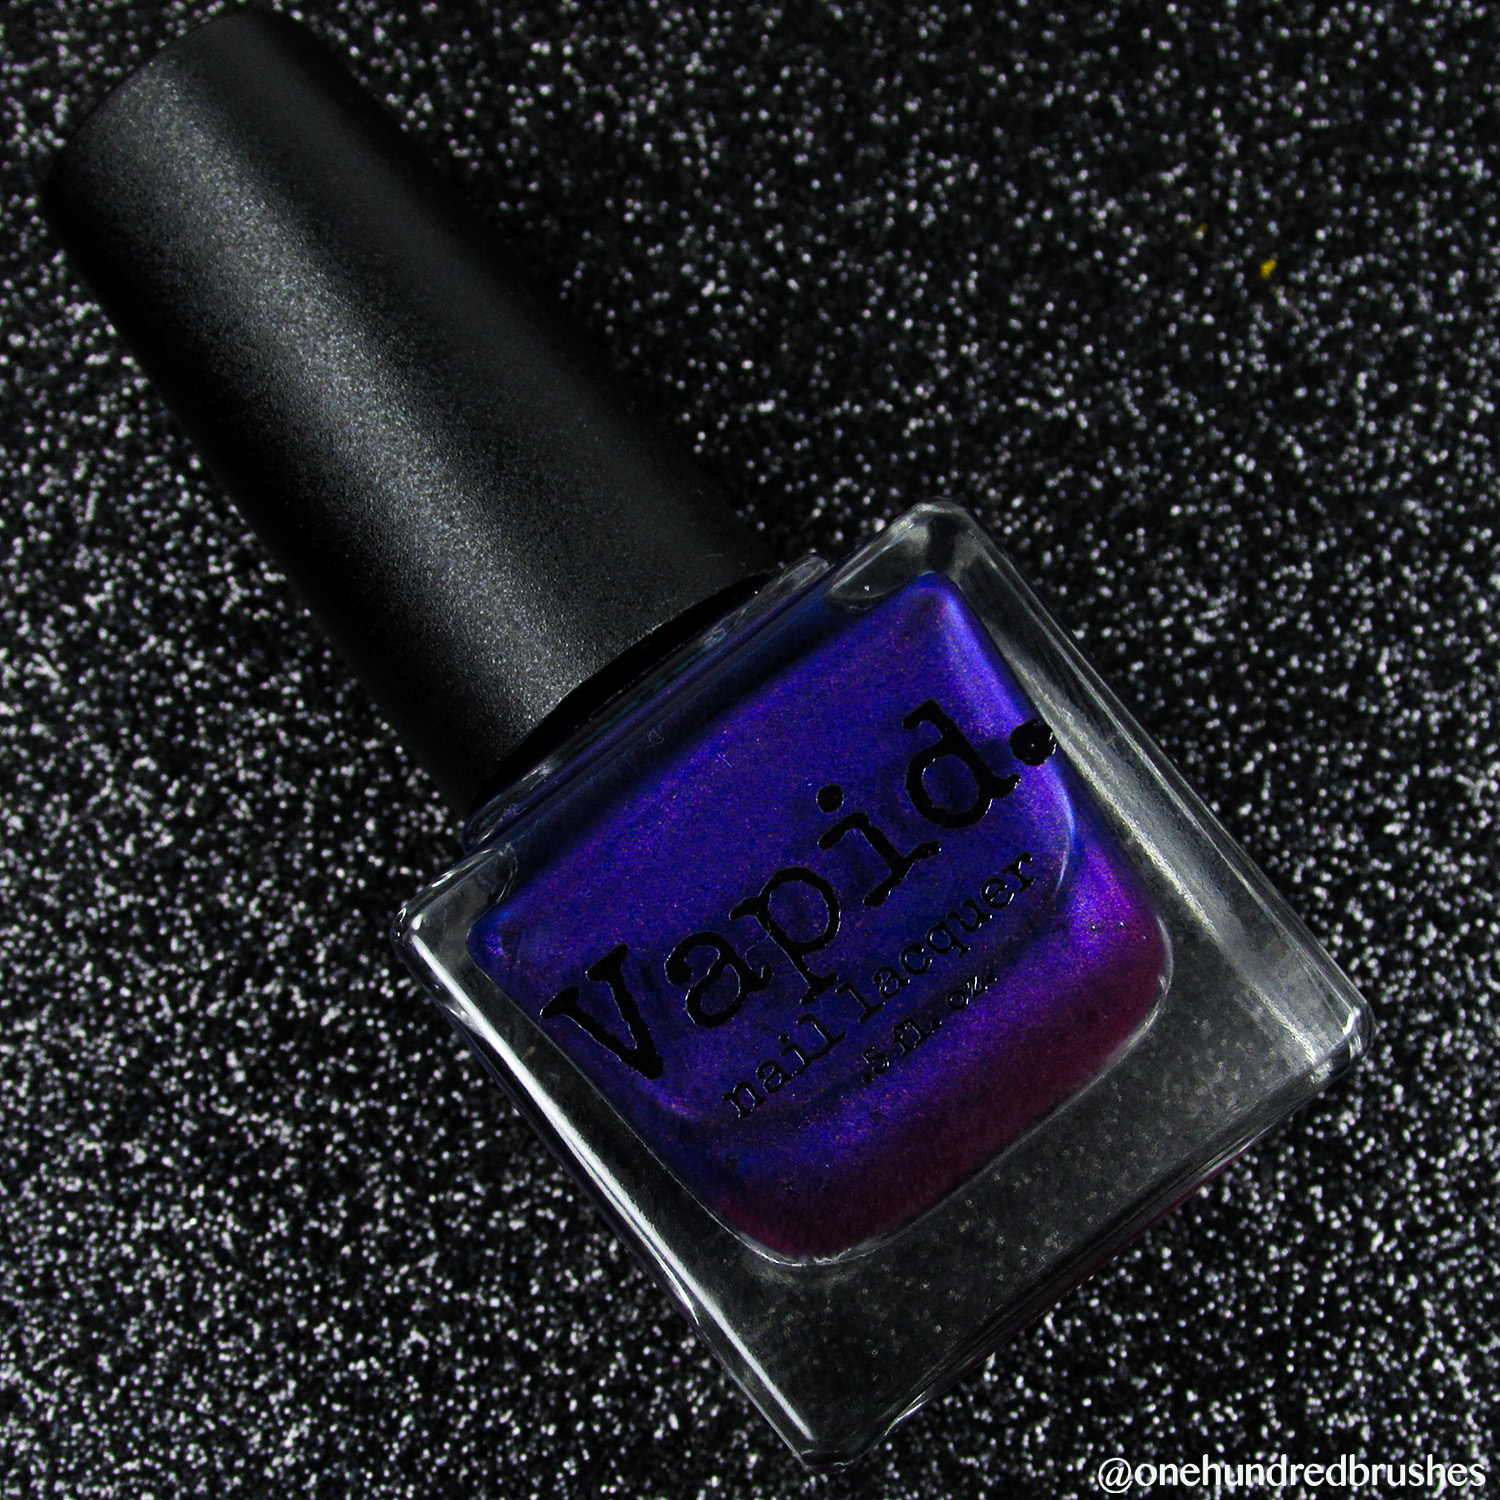 Concord - bottle - Vapid Lacquer - April 2018 - Spring release - purple - pink shimmer